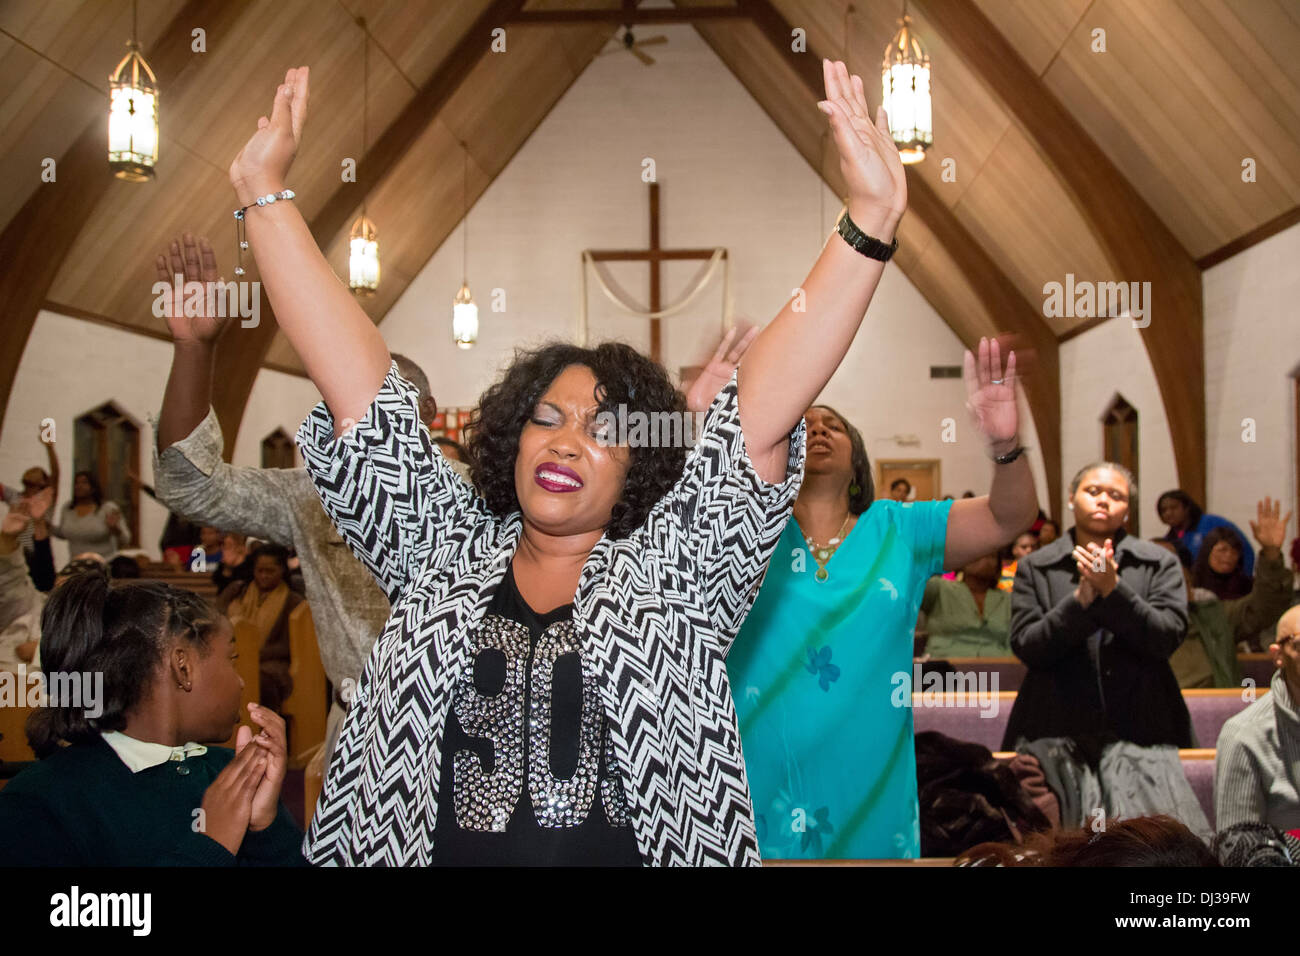 Detroit, Michigan - Gospel concert at Peace and Goodwill Baptist Church. - Stock Image